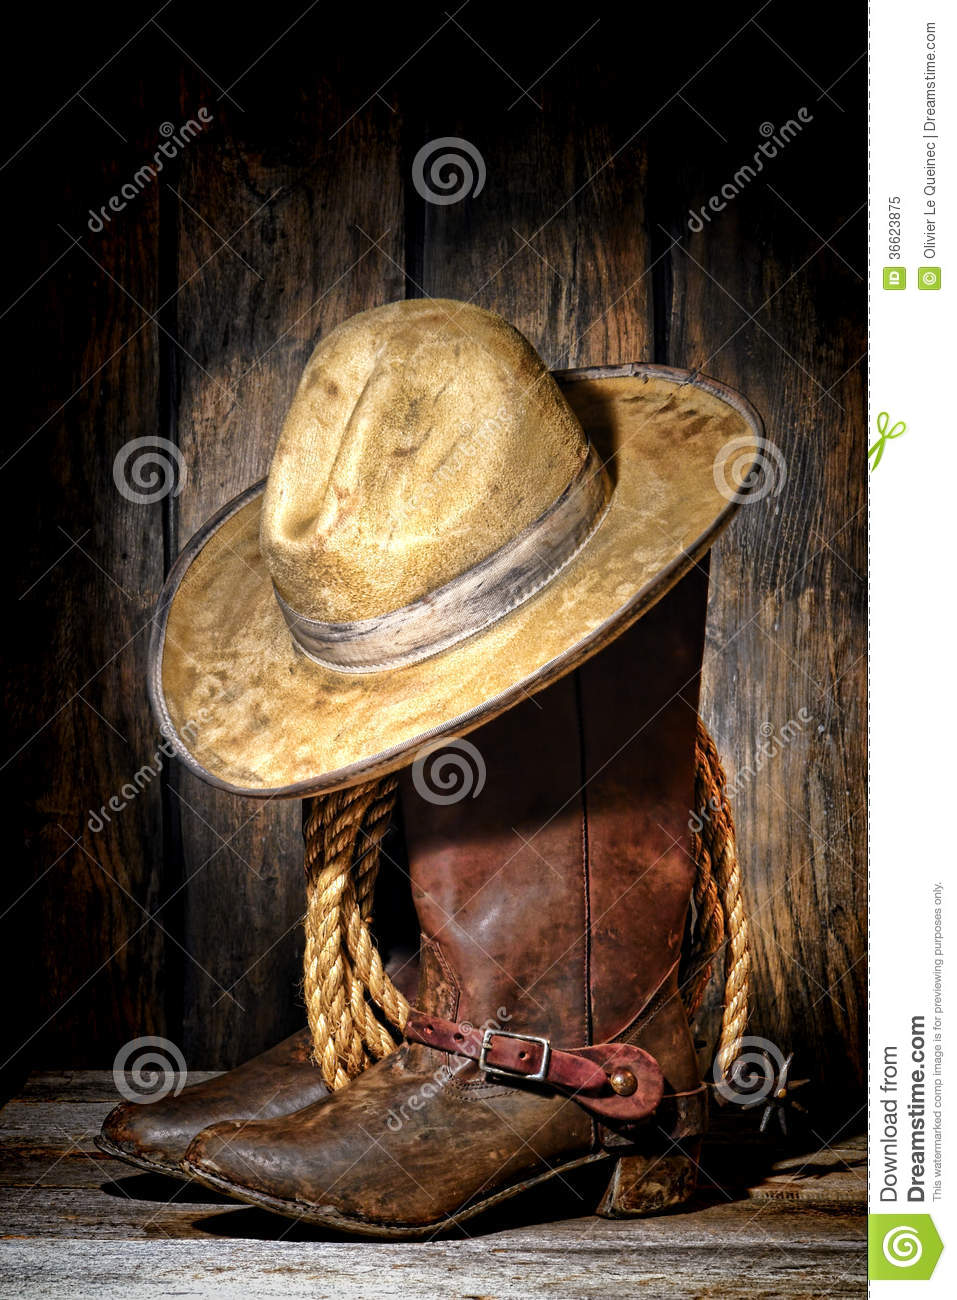 American West rodeo cowboy dirty and used white felt hat atop worn and  muddy leather working rancher boots with vintage spurs and old ranching  rope in an ... 2688dc2c912